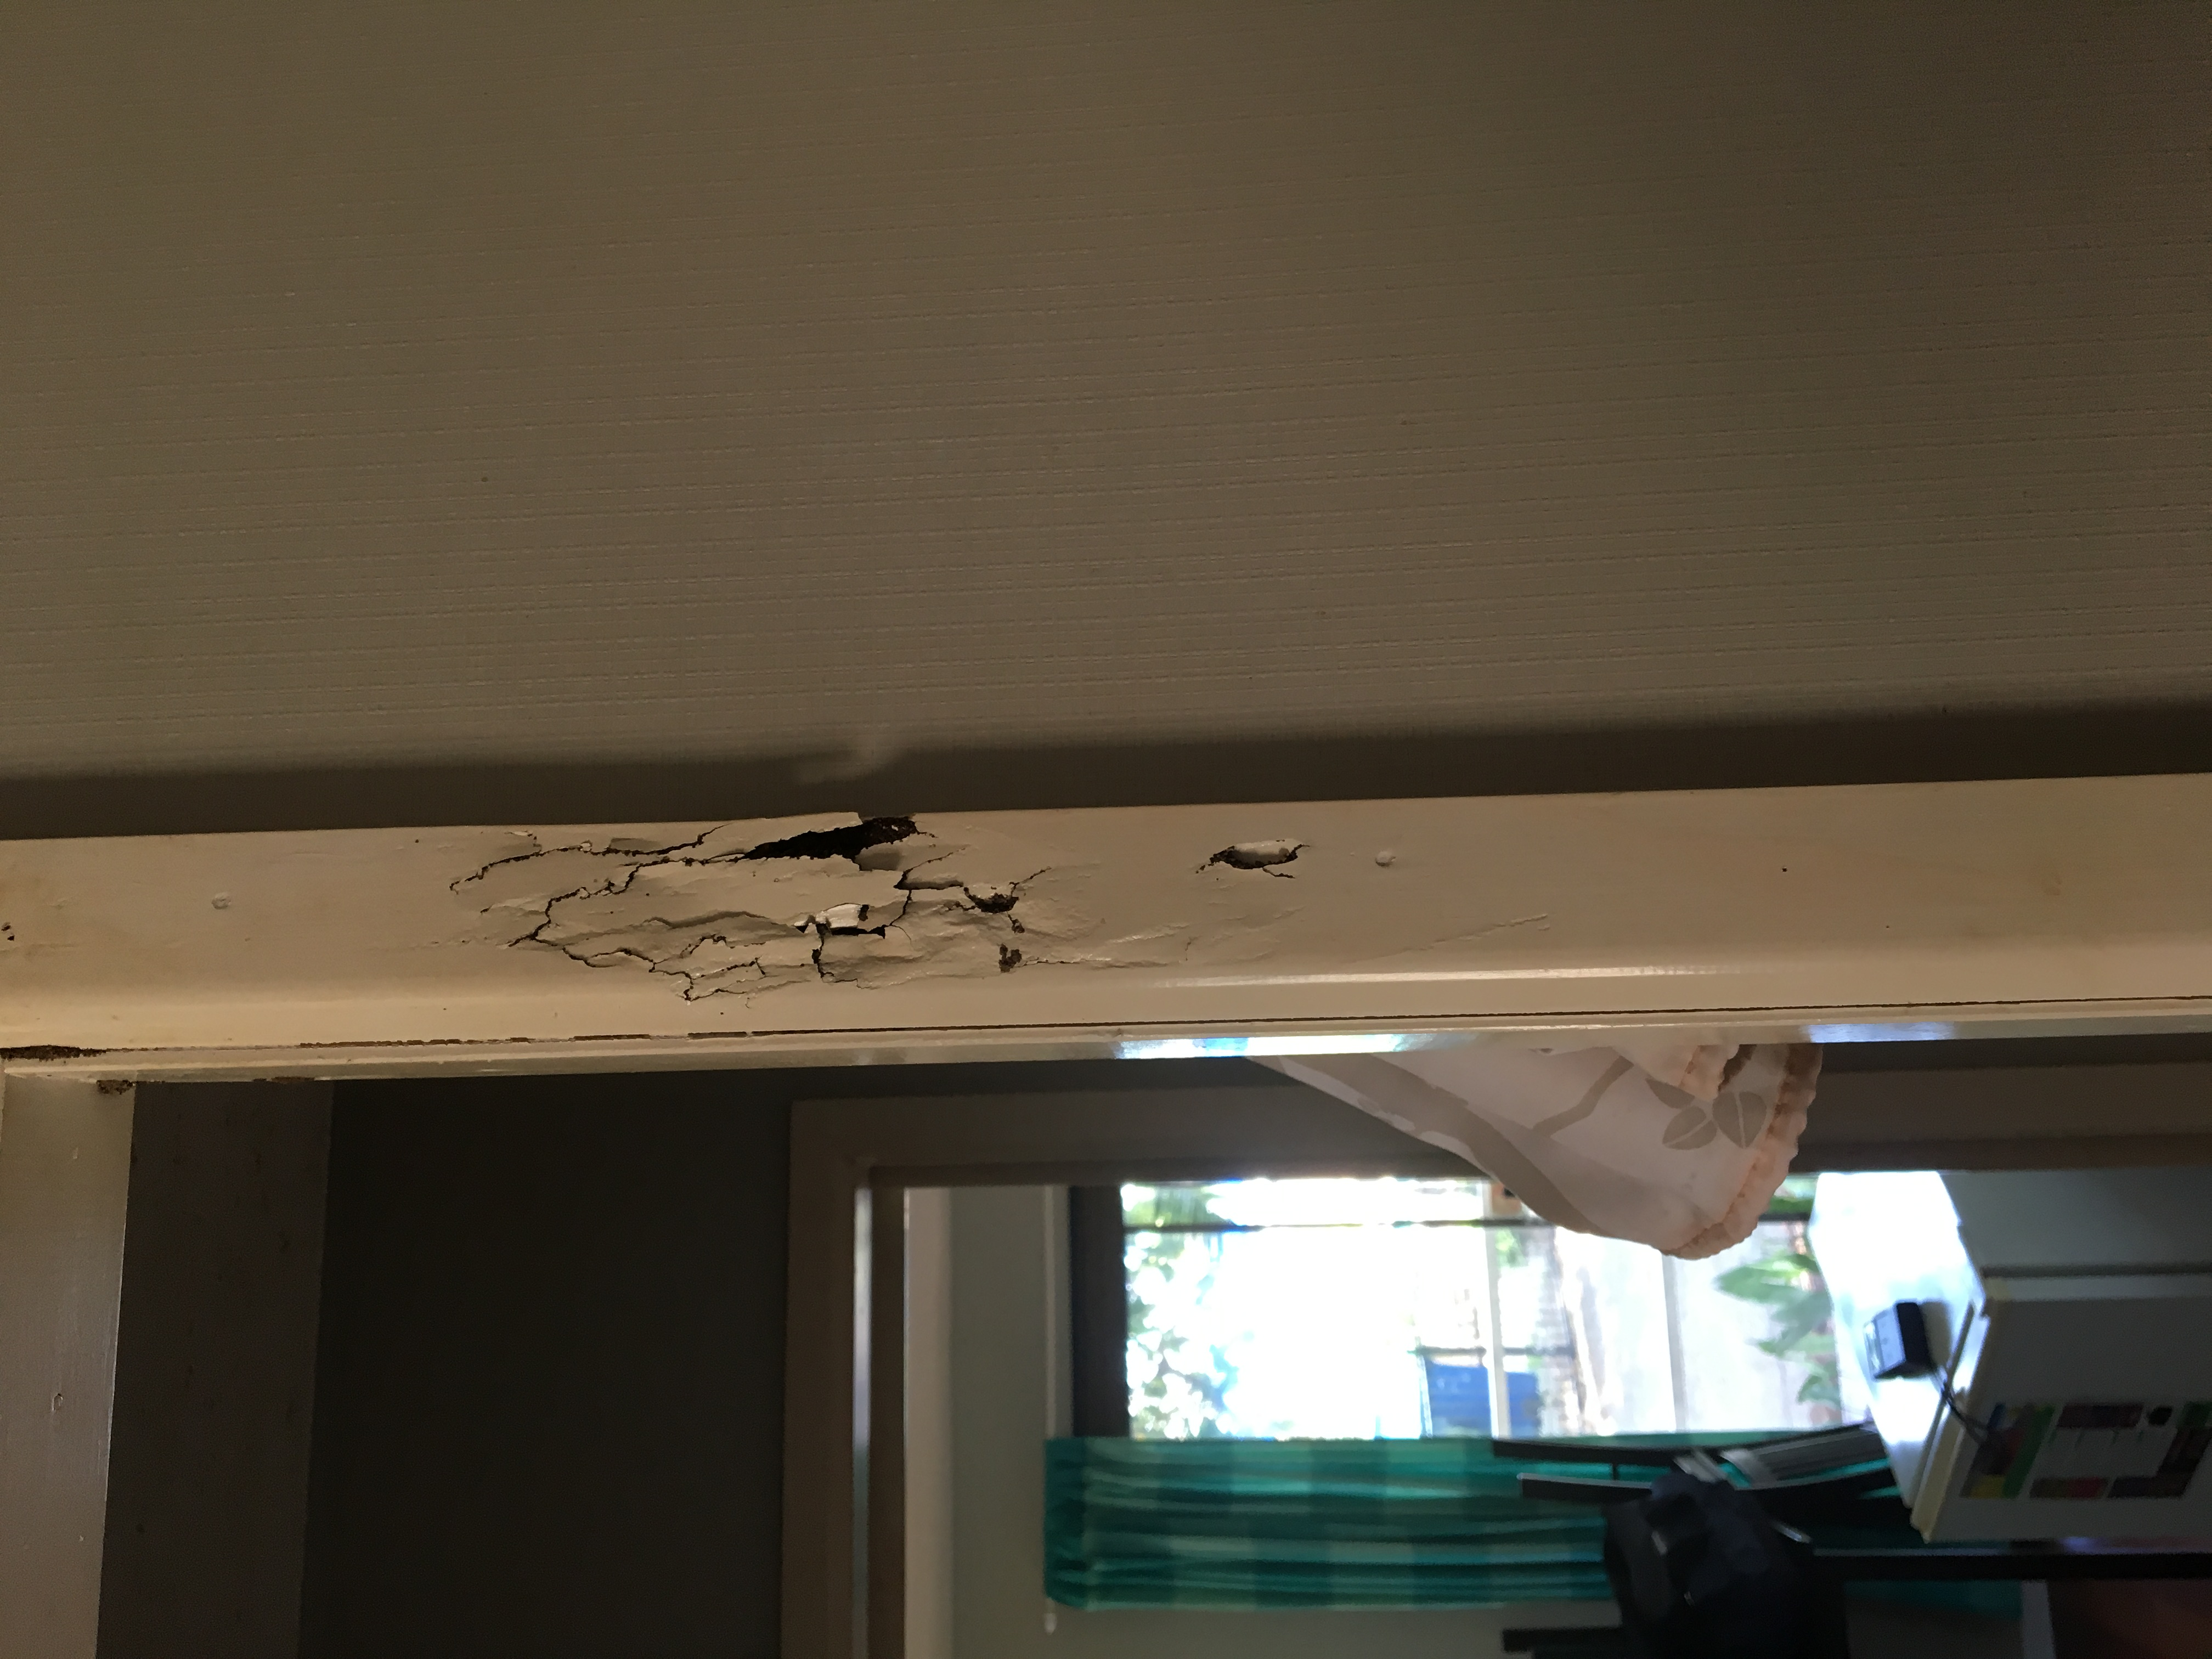 Door frame damage by Termites